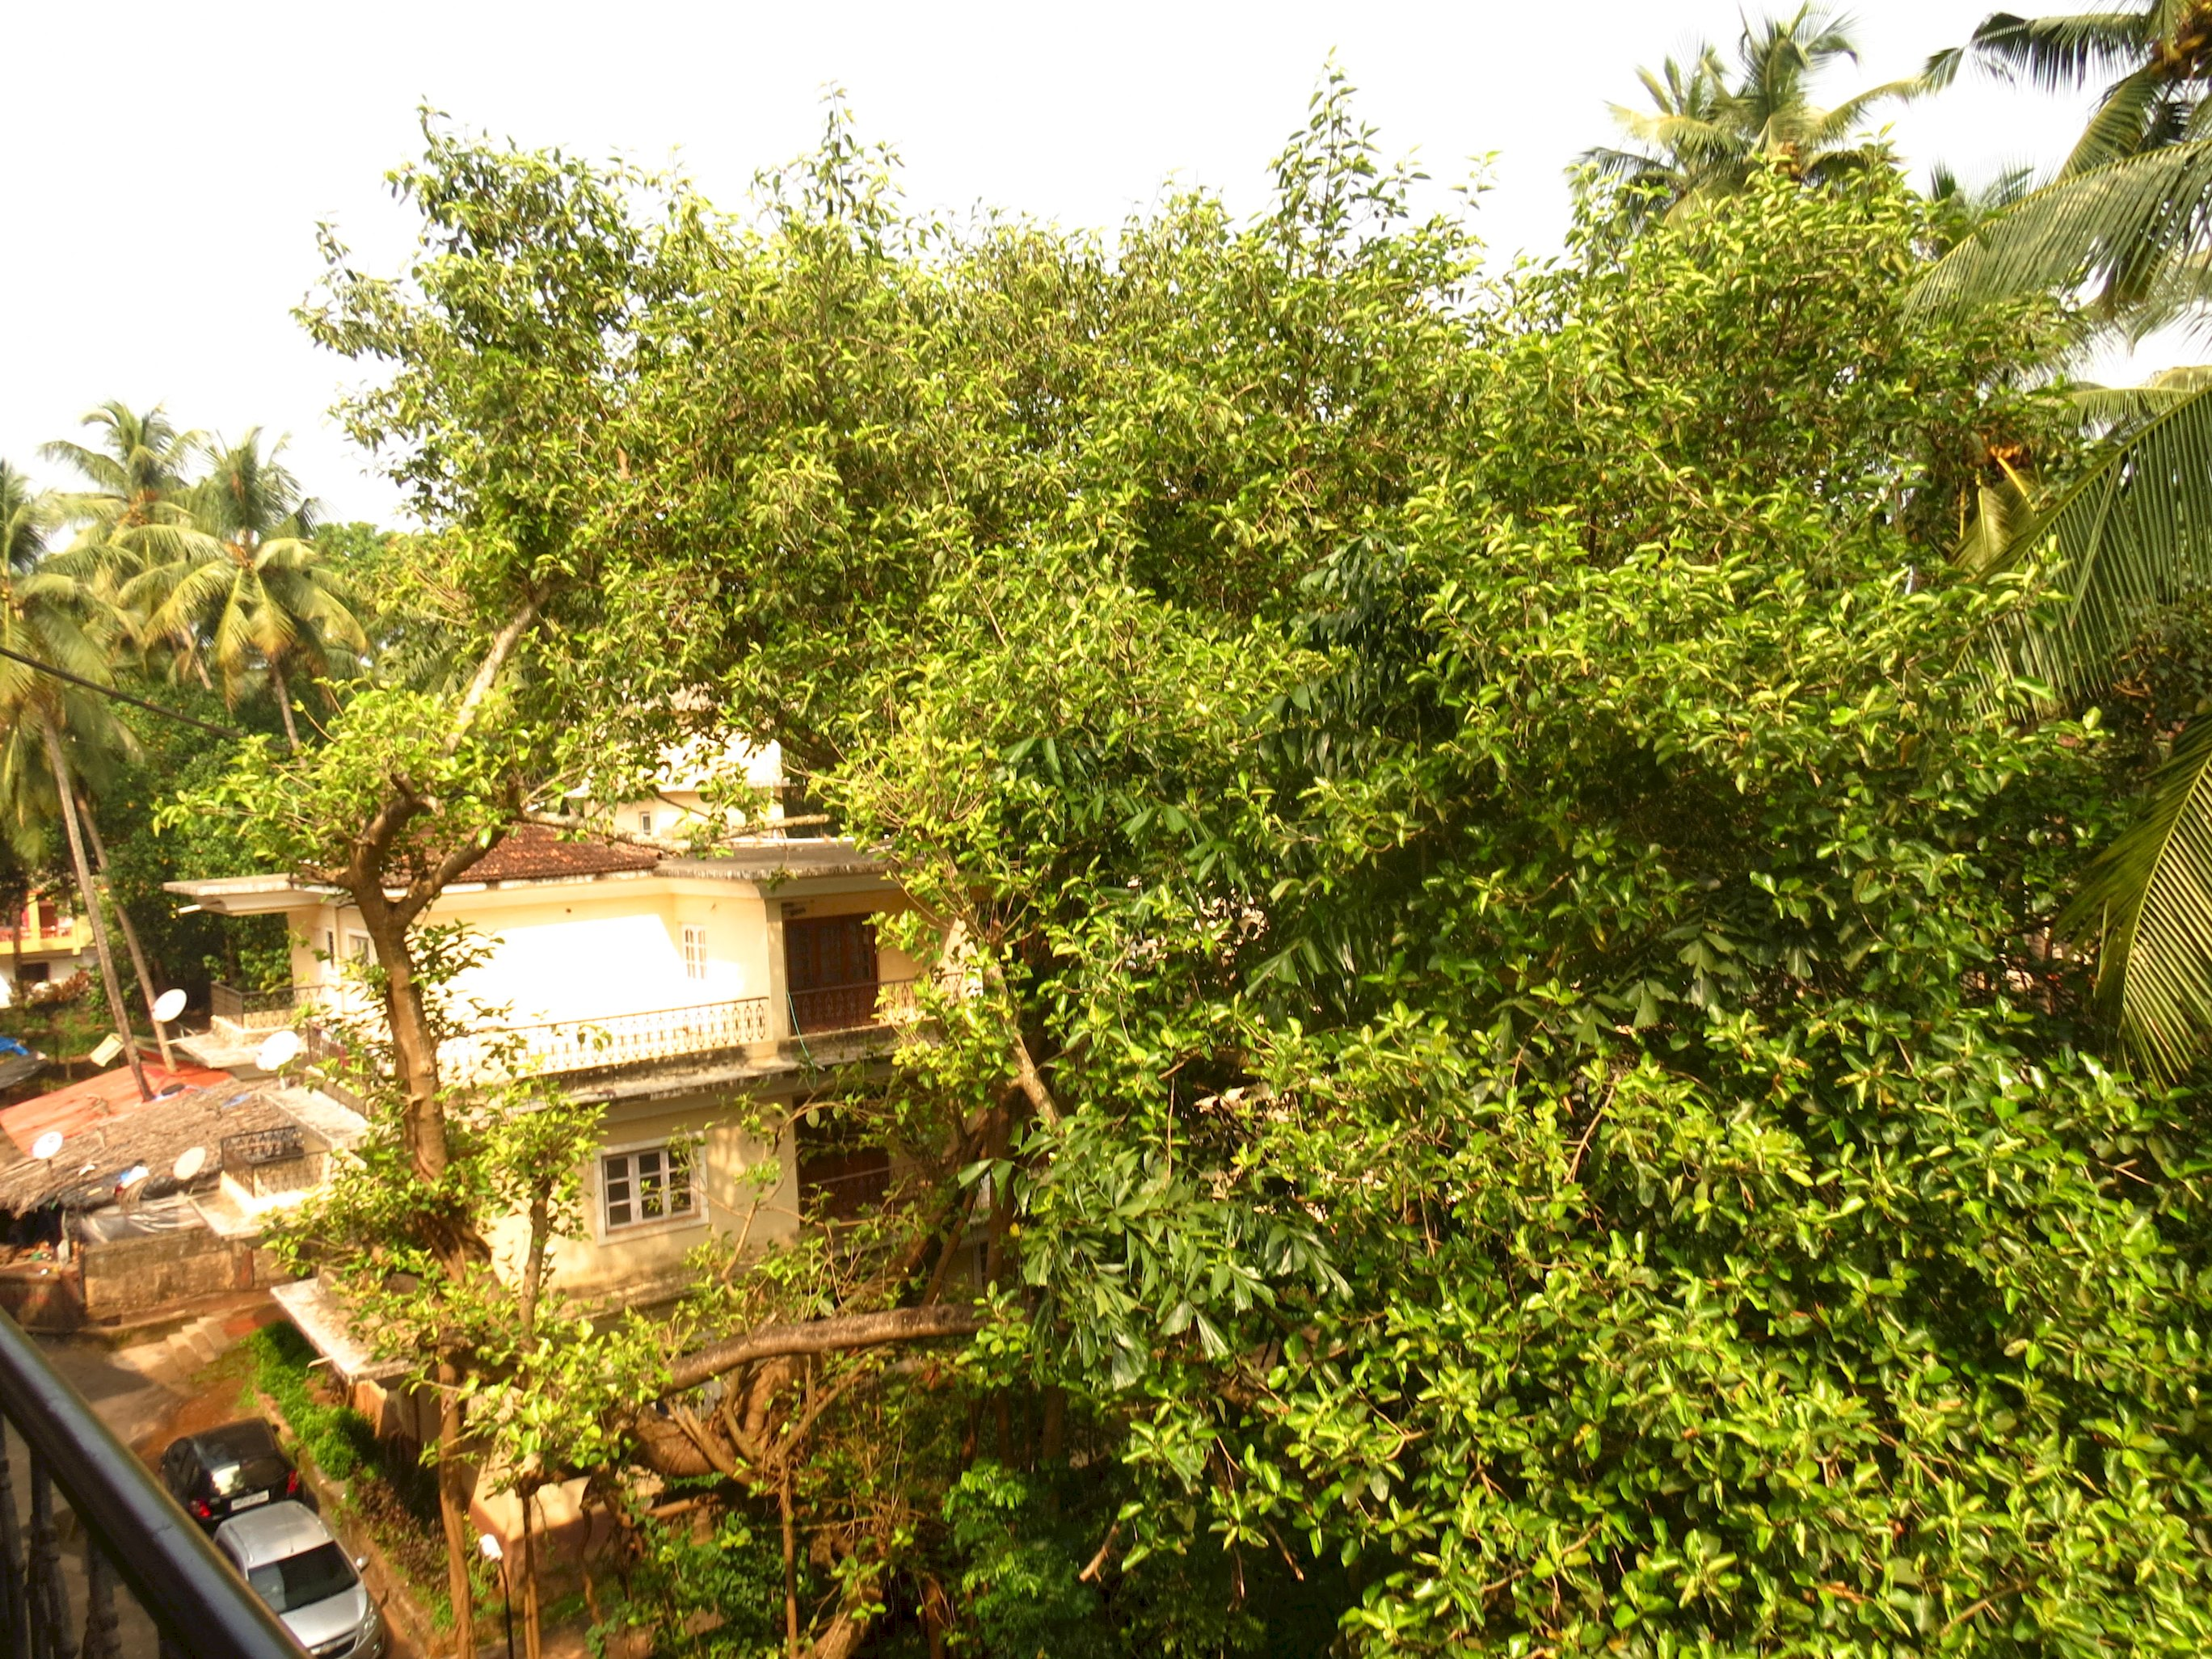 Apartment 38  Central Calangute Serviced Apartment   WiFi photo 19599030